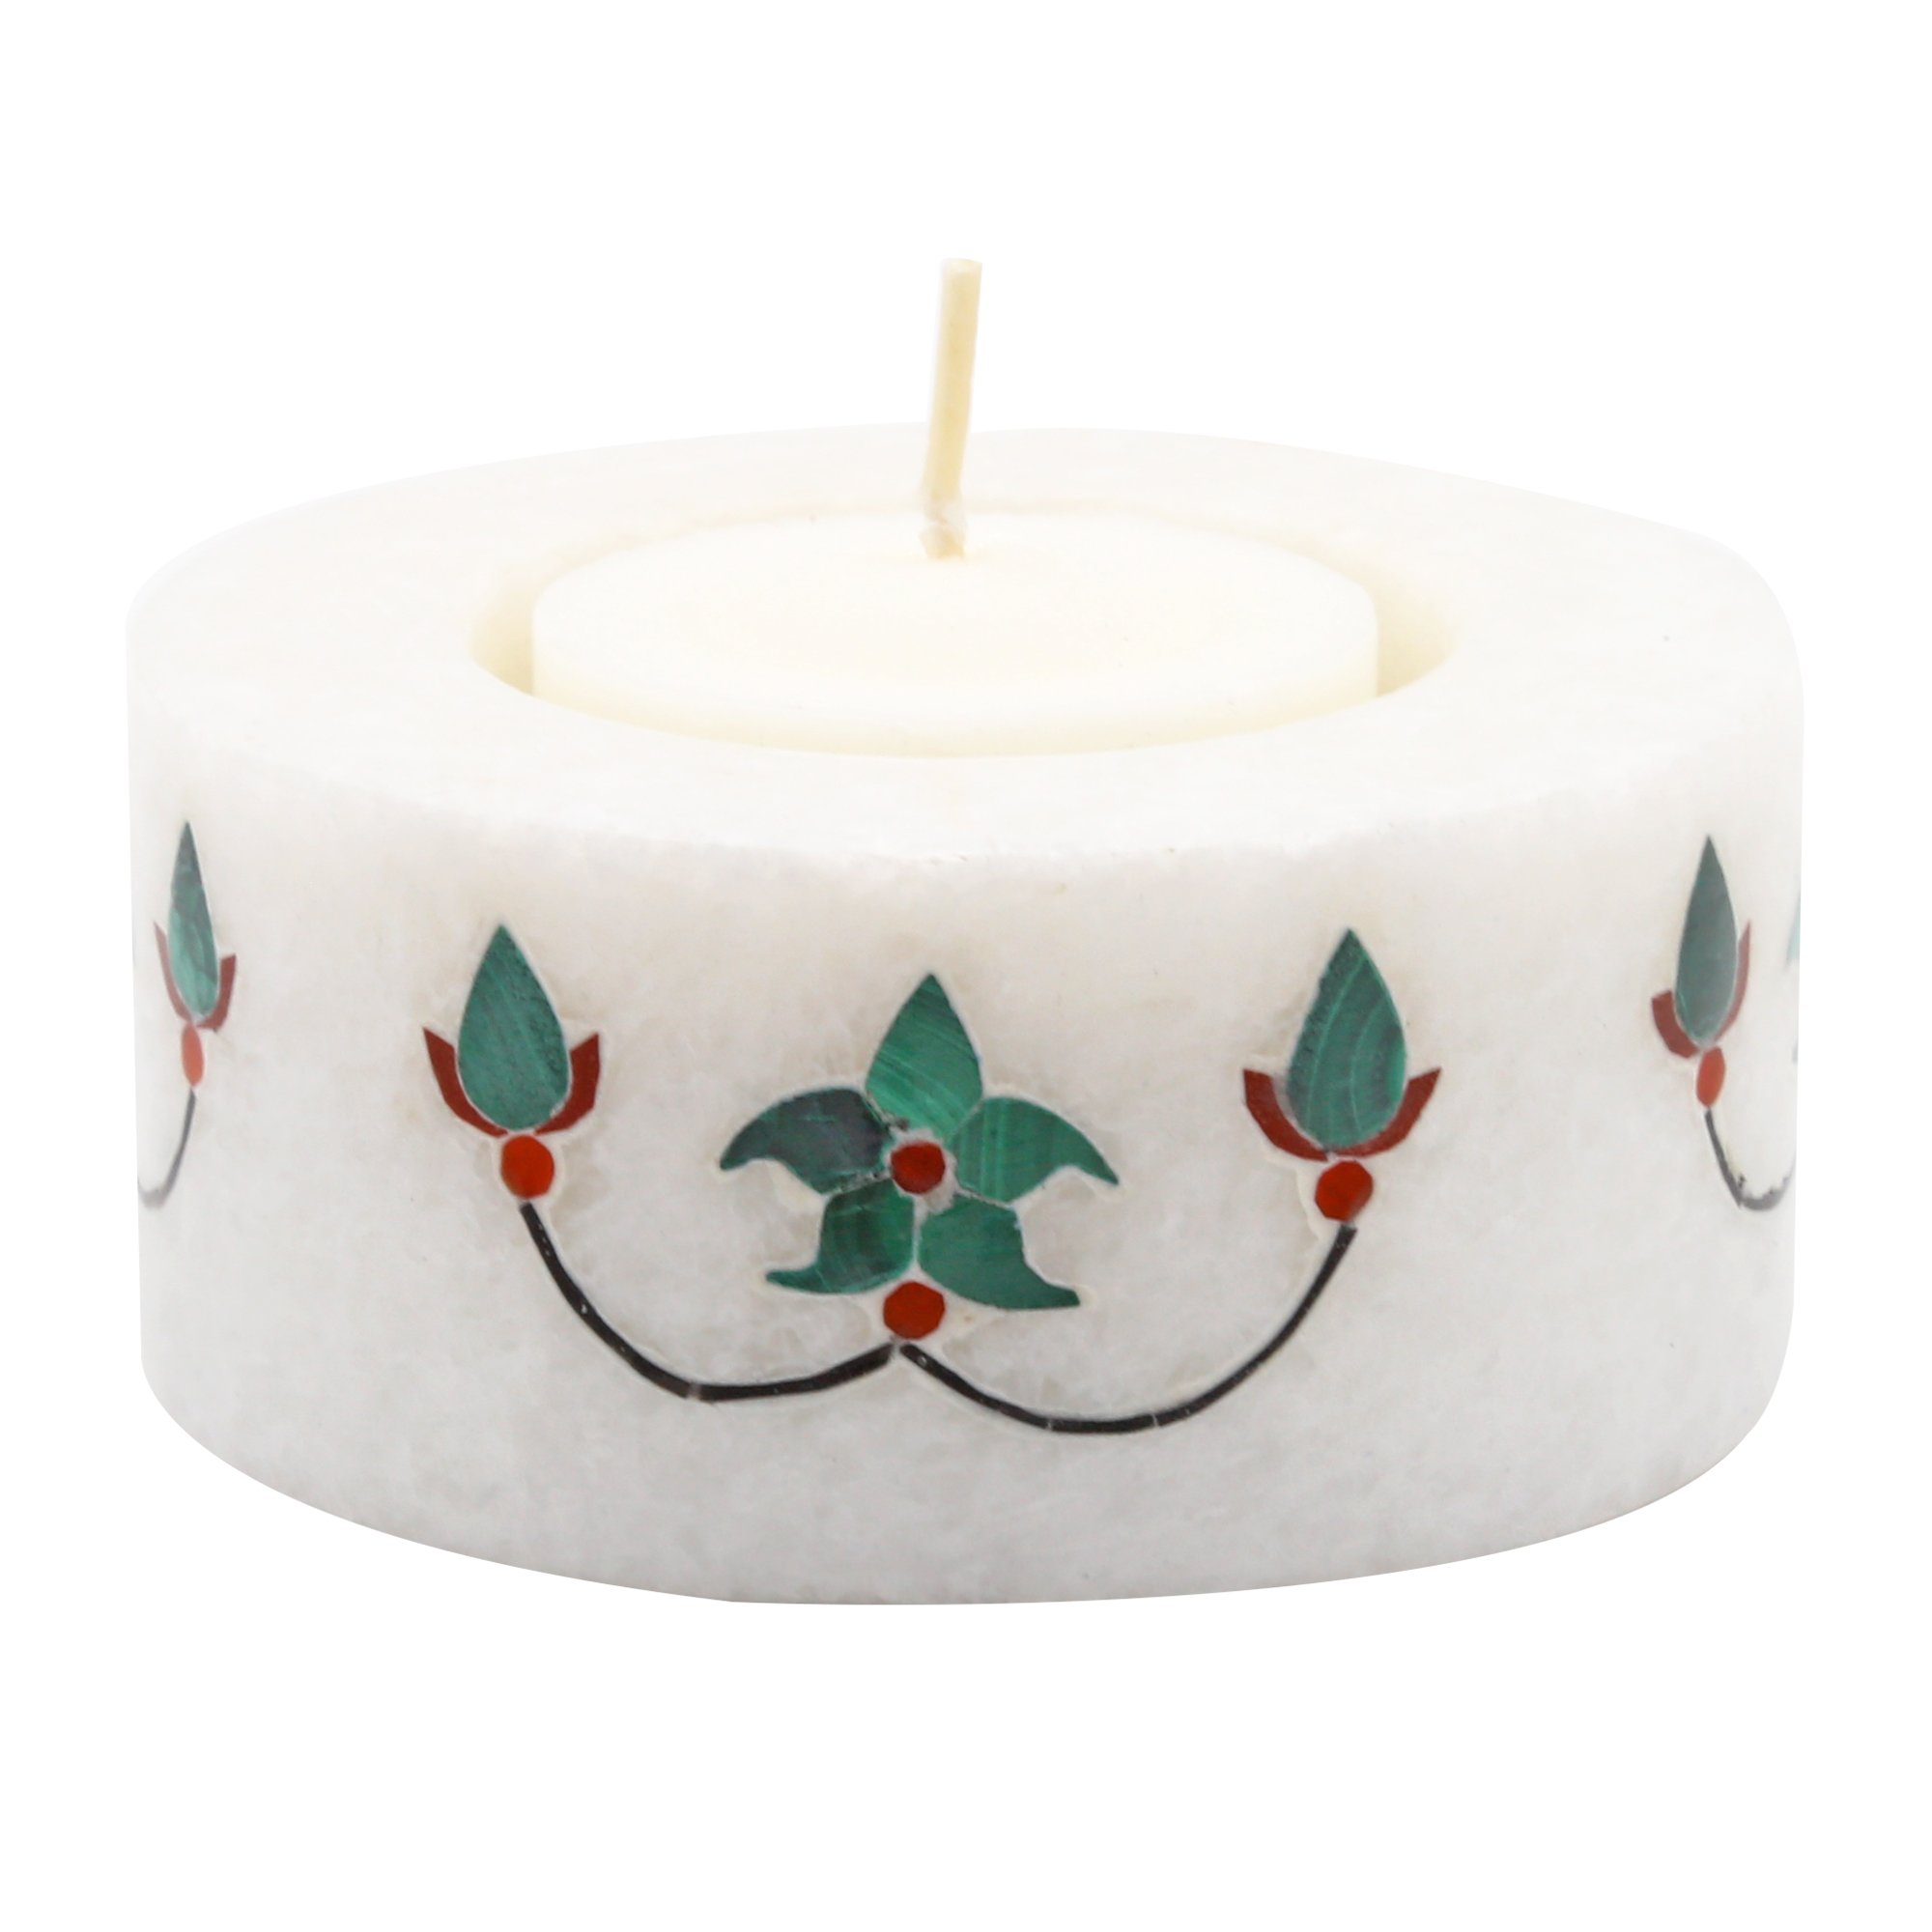 Reevaria Pietra dura Marble Candle Stand - Tealight Round - Handcrafted Design and Inlaid with pure natural and Semi Precious Stones - Perfect Christmas Gift